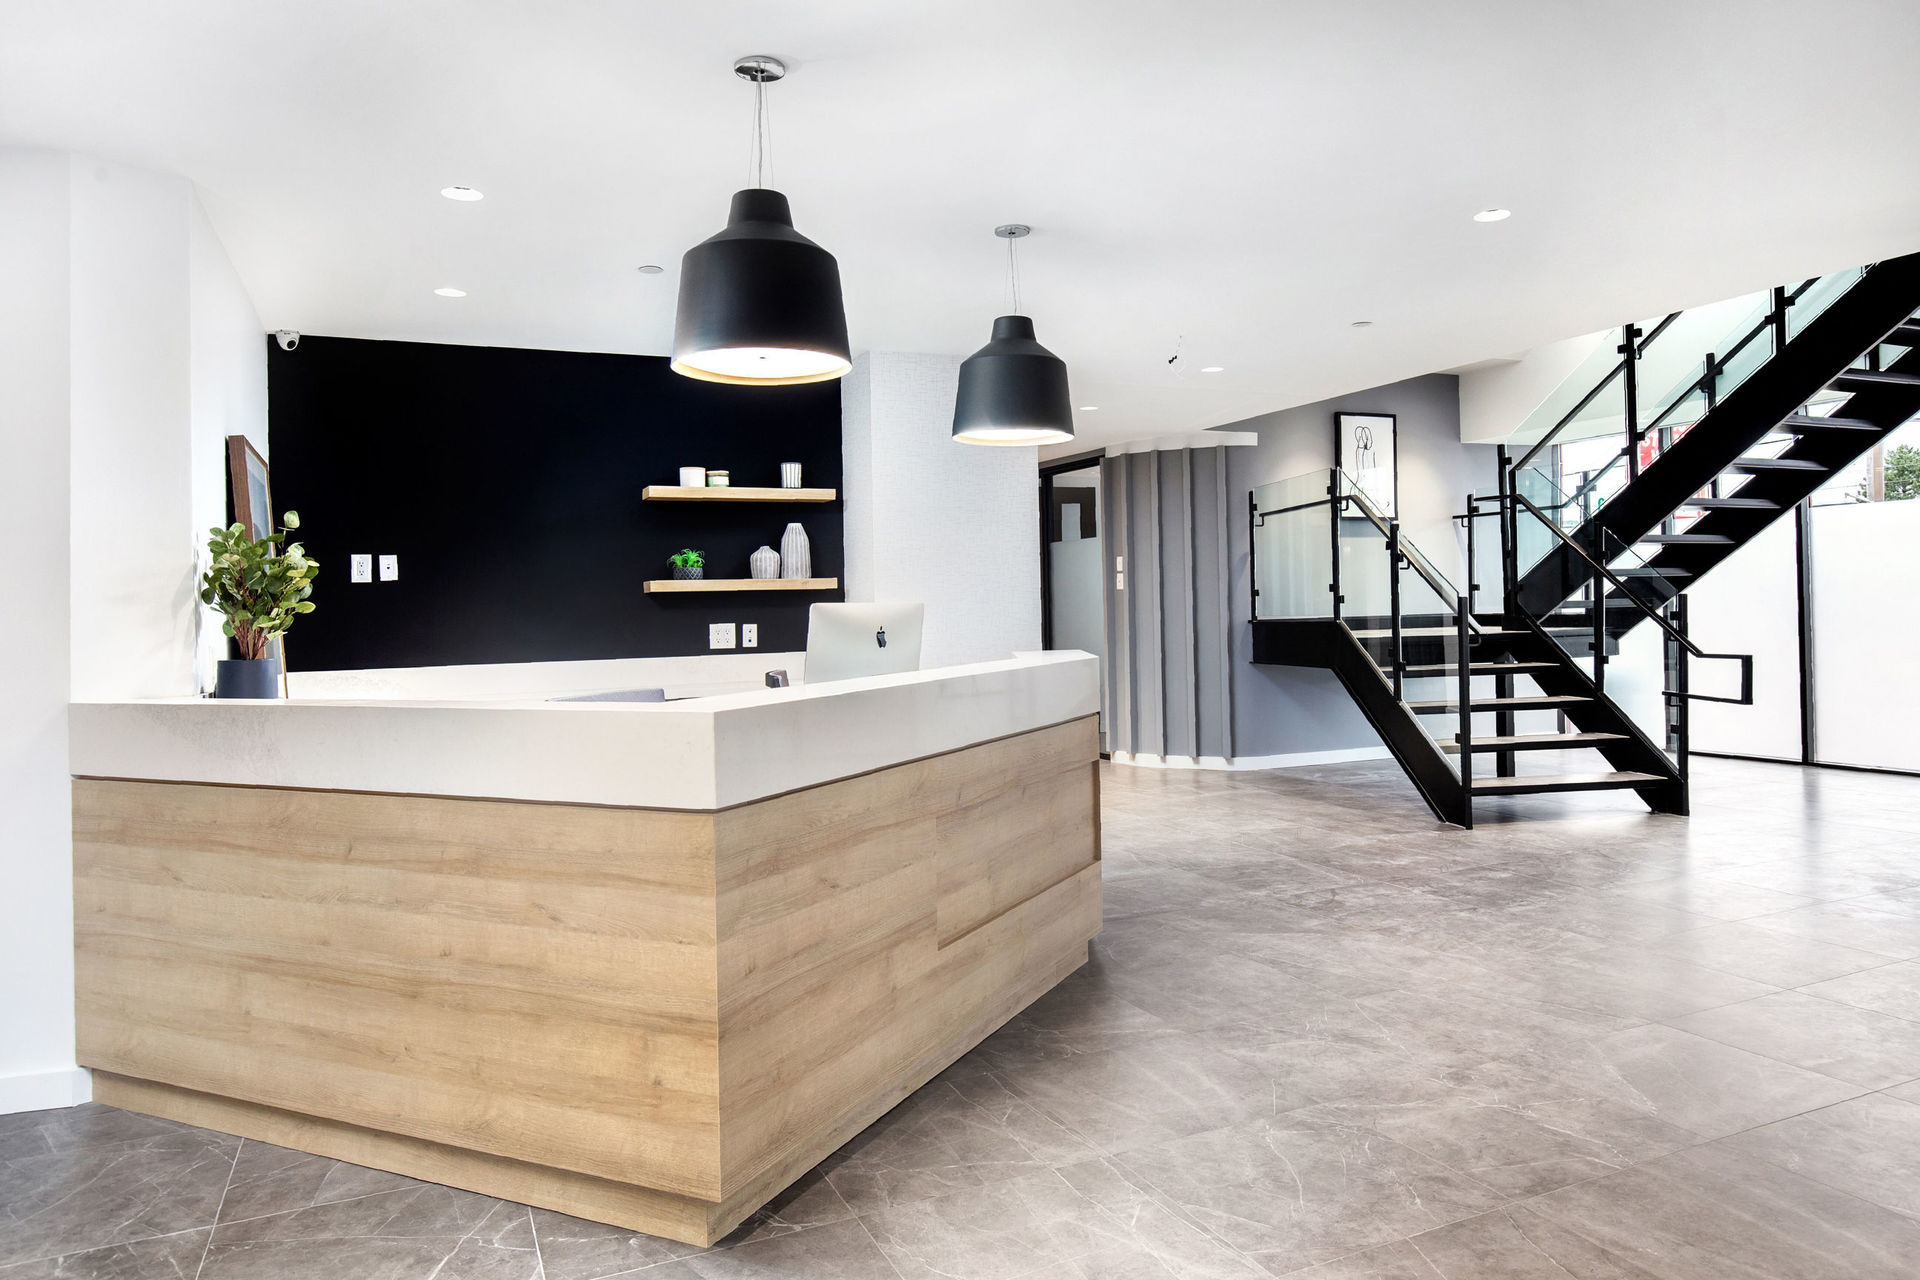 The welcoming and bright reception area at Weston Law Chambers featuring the Valco ceiling suspended lighting fixture by Eureka.